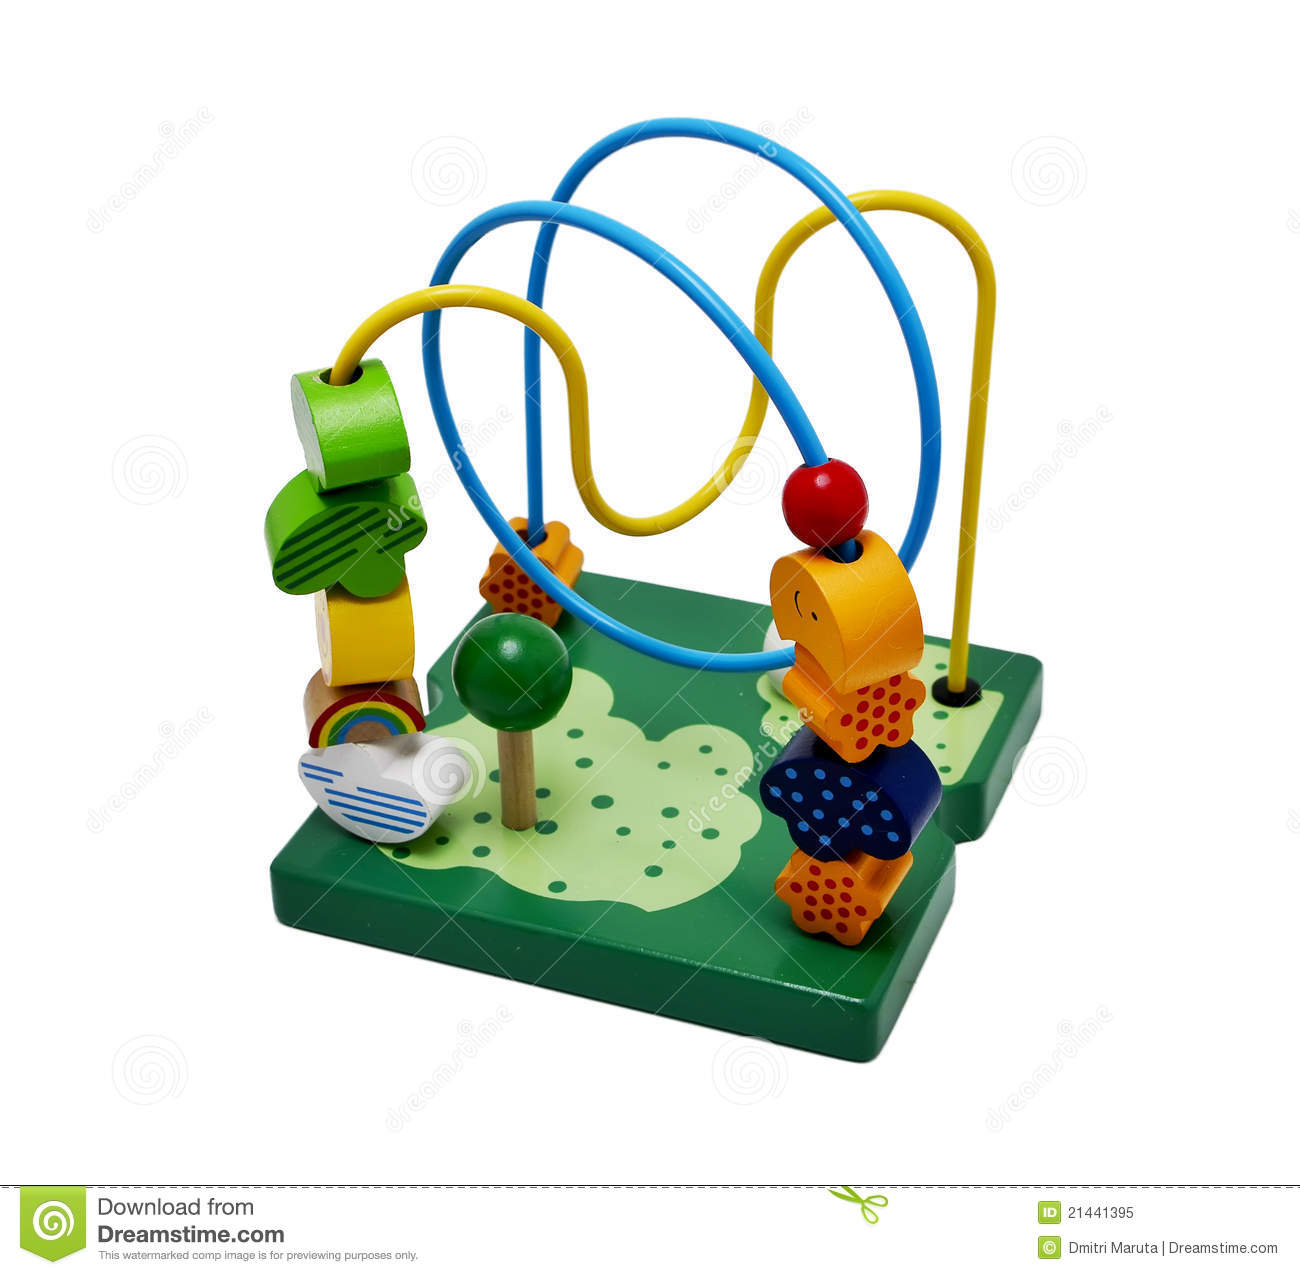 Toy For Motor Development Royalty Free Stock Photo Image